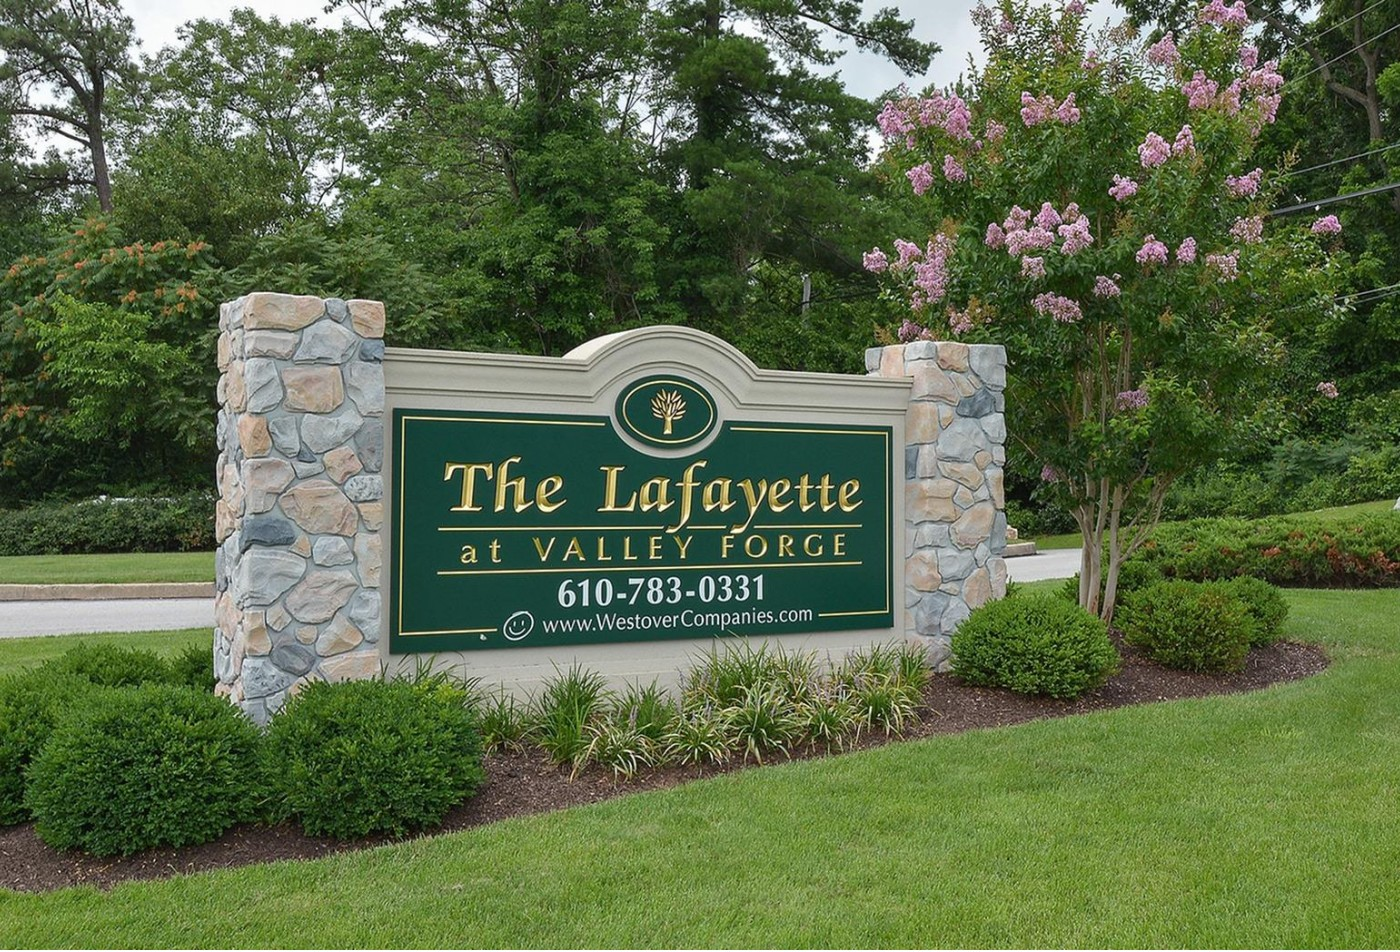 Apartments in King of Prussia, PA | The Lafayette at Valley Forge